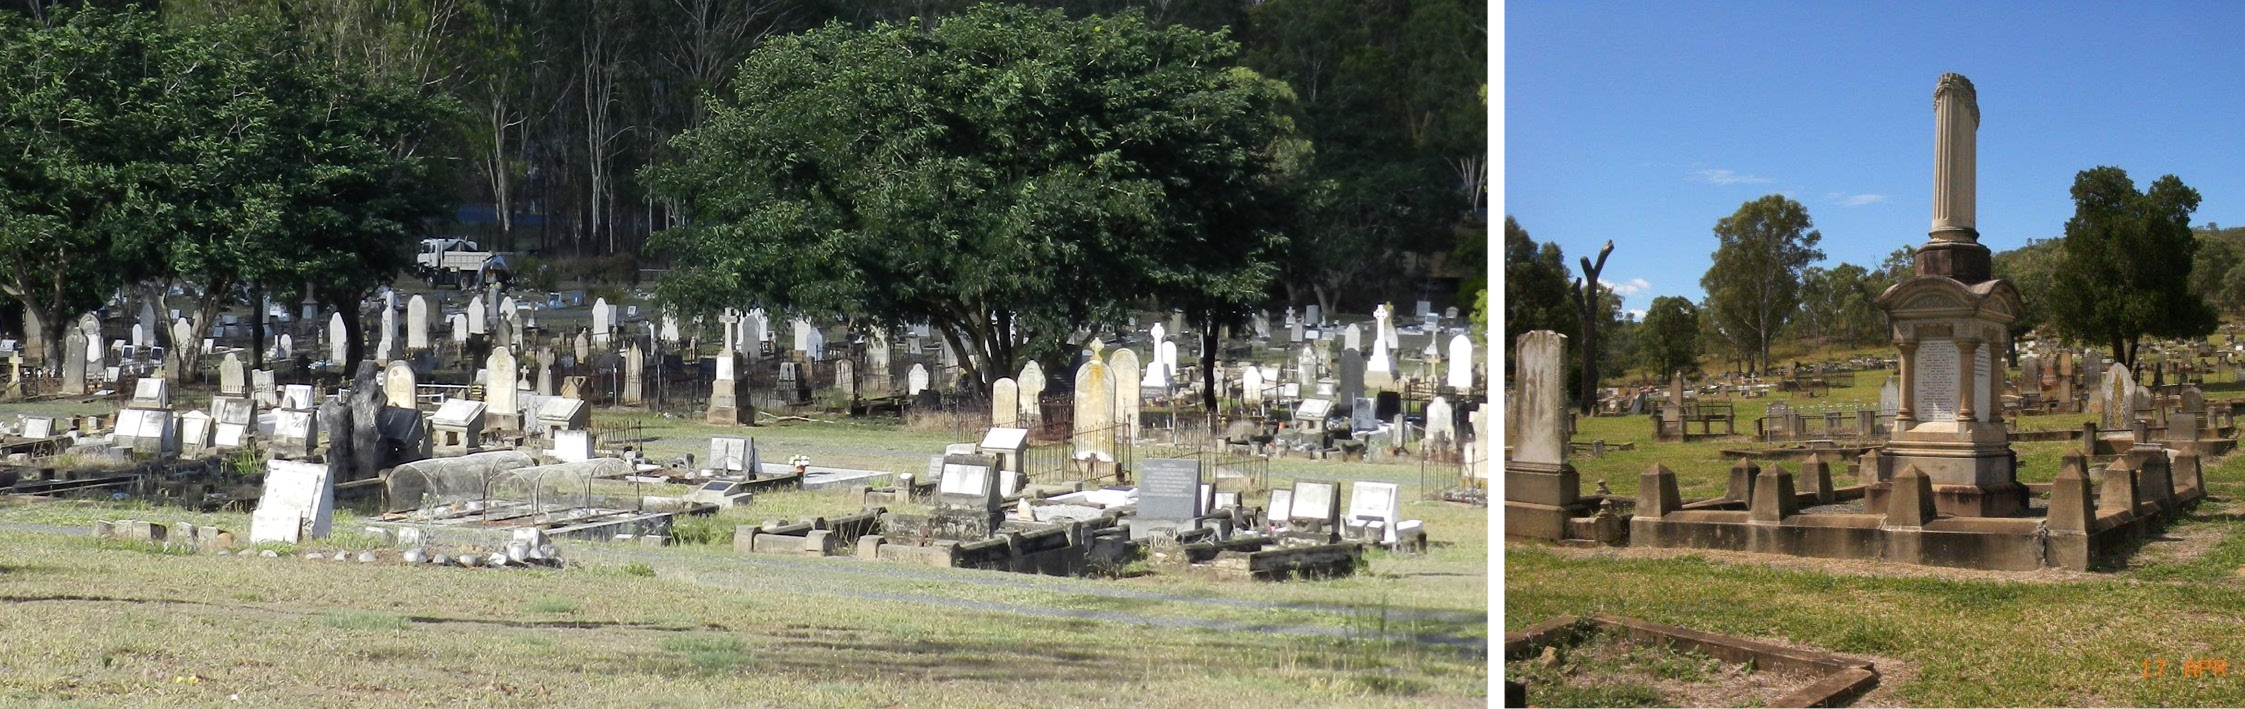 Mount Morgan Cemetery